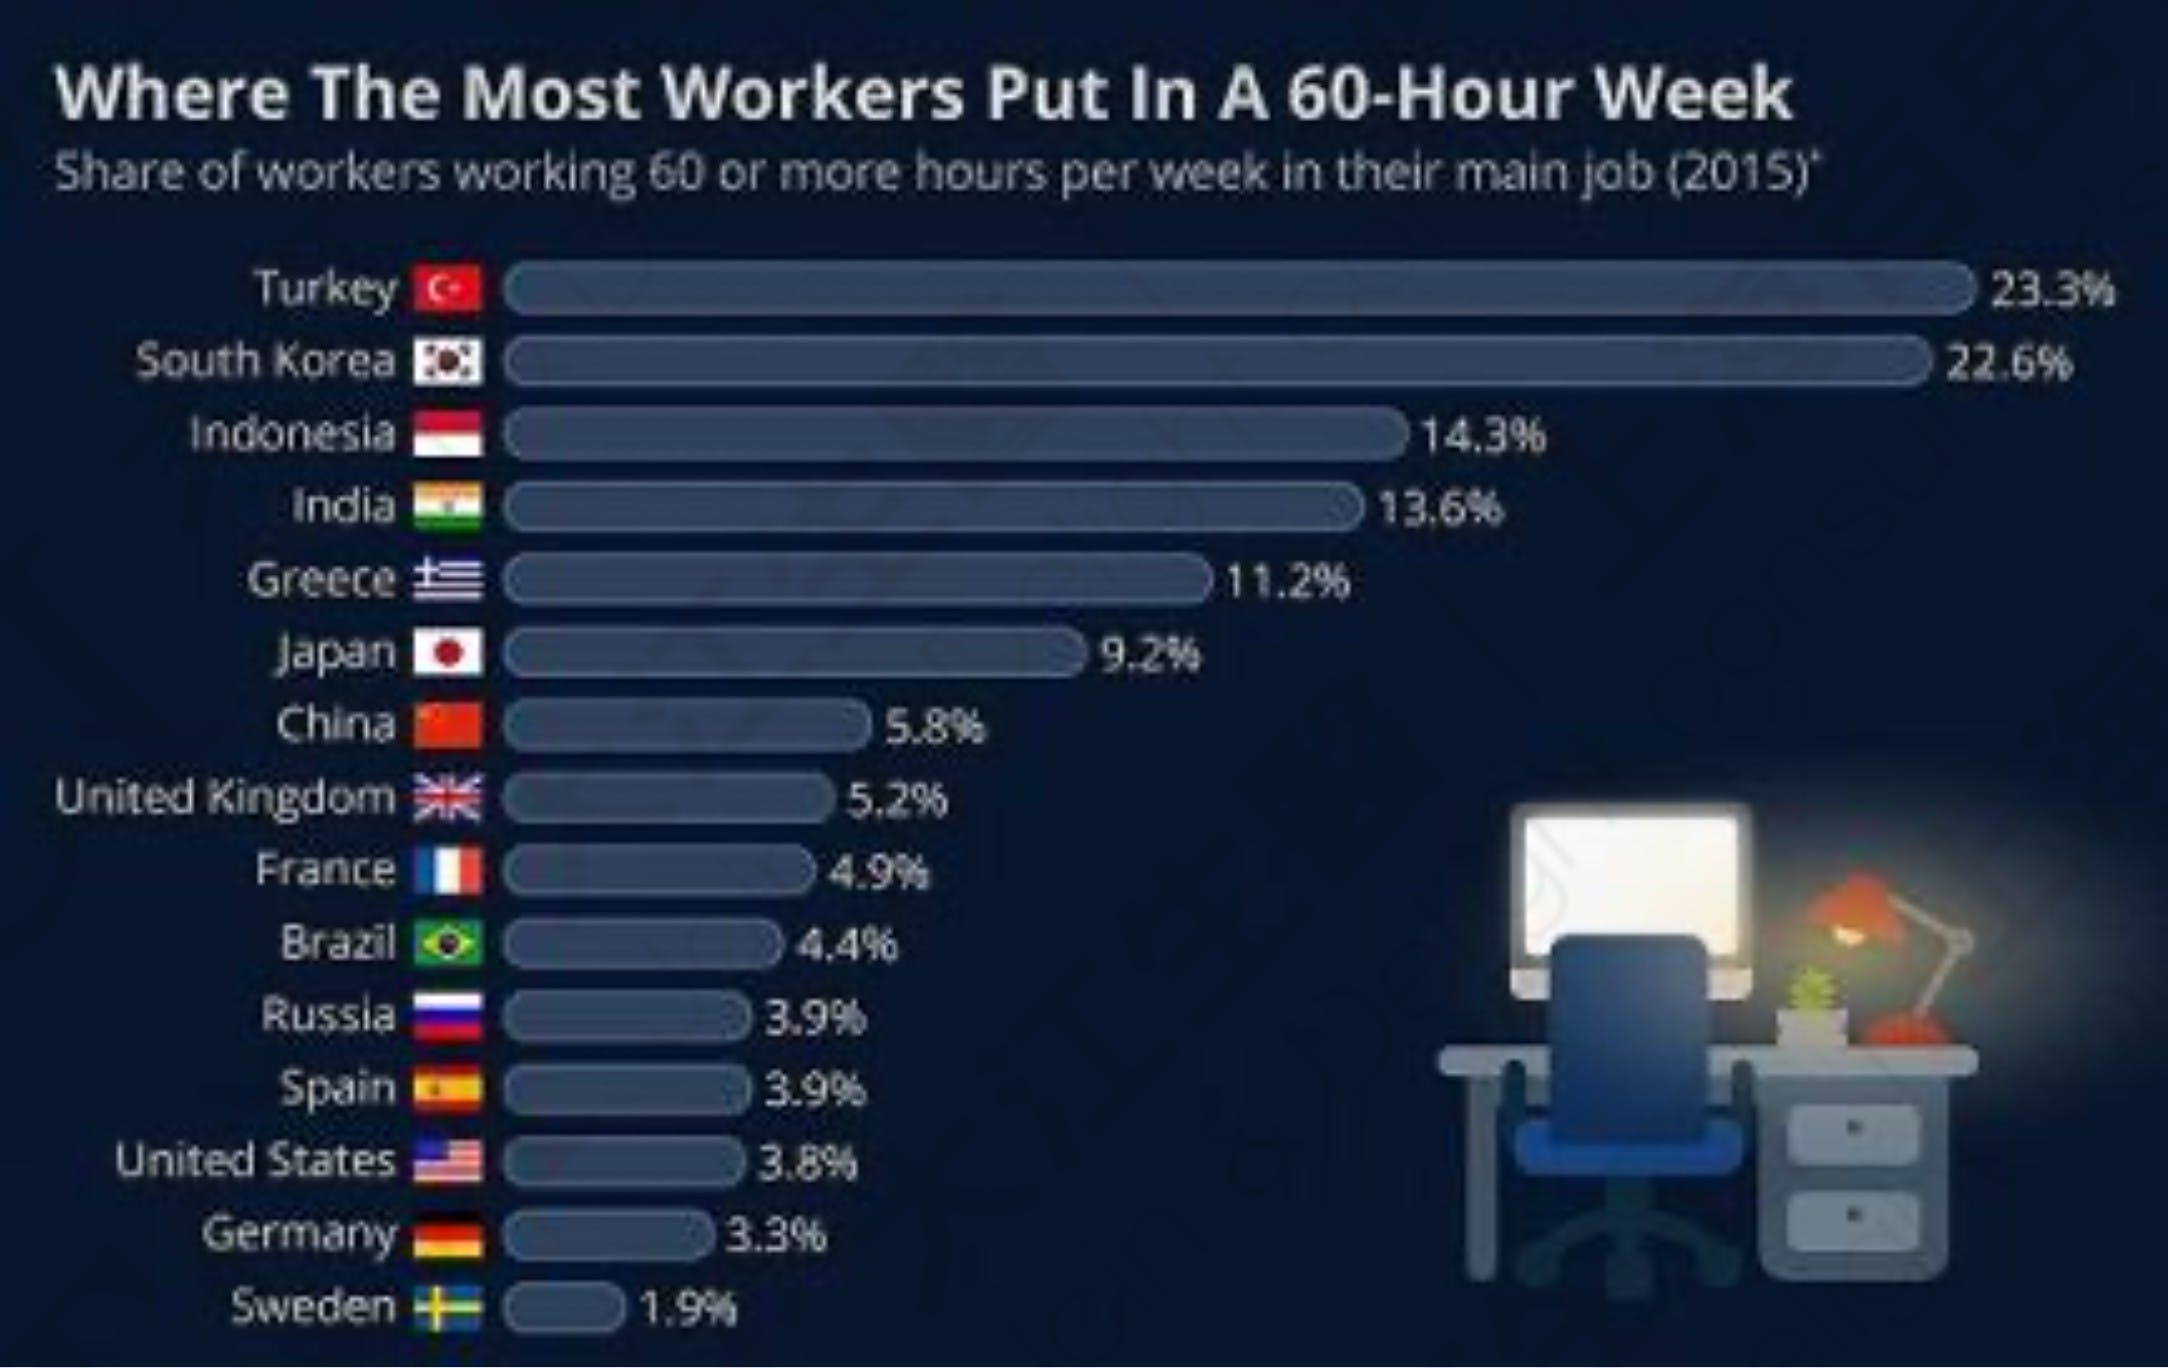 Ranking of working over 60 hours per week, Source: Forbes